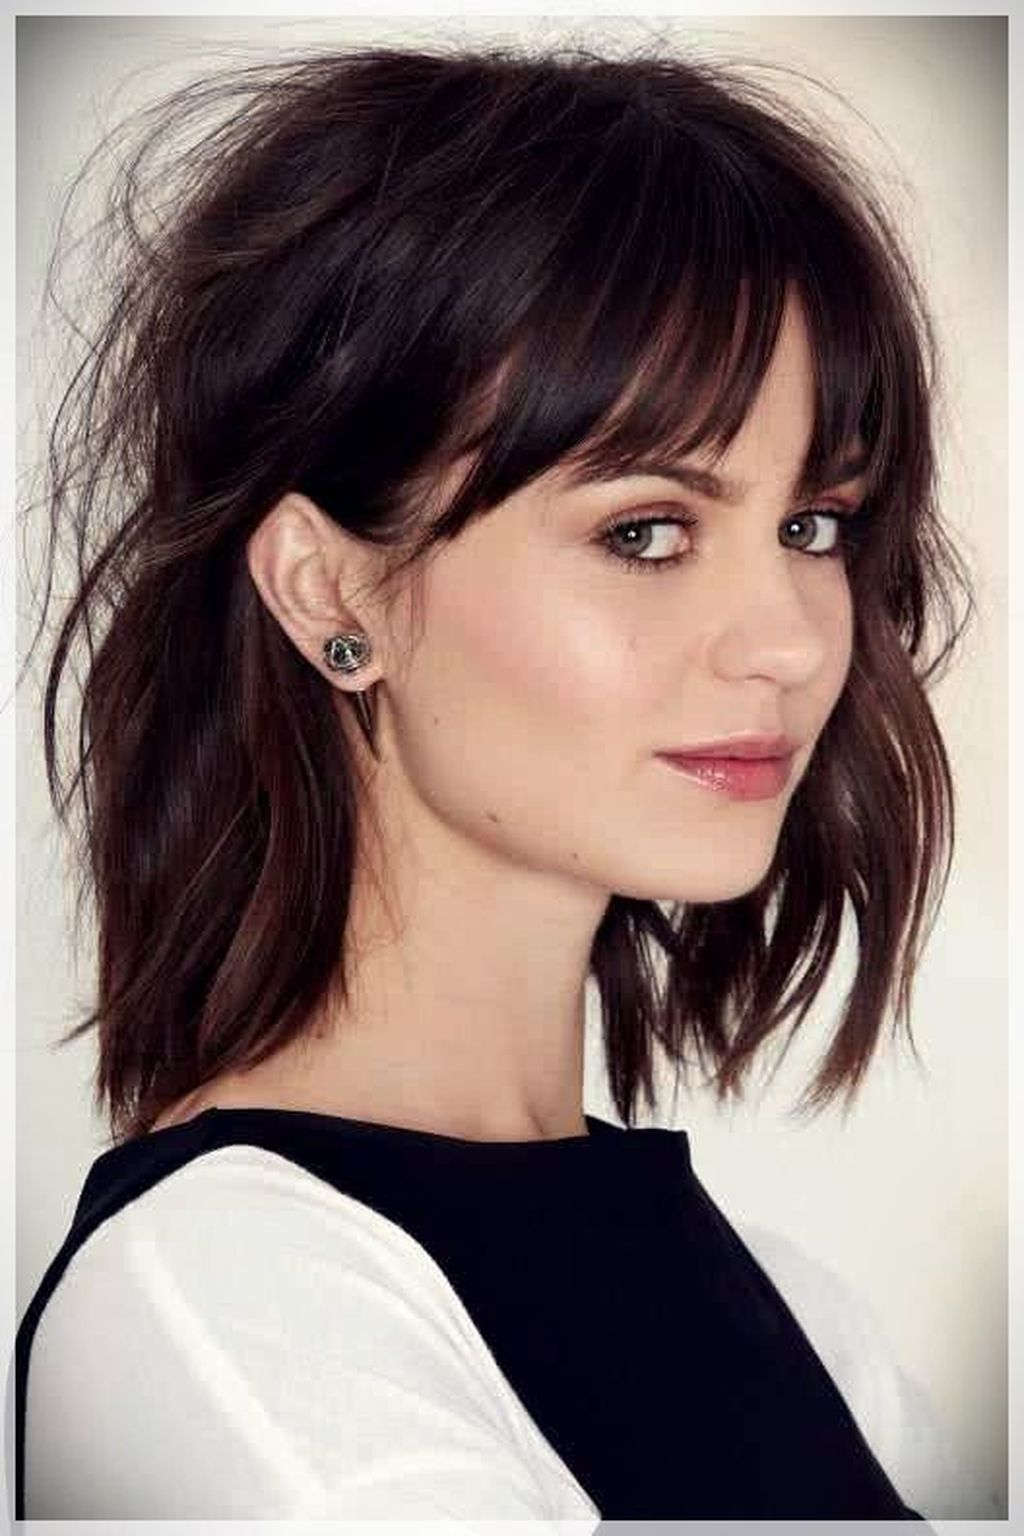 Spring Is All About New Beginnings And Your Hair Is A Great Place To Start Now That Spring Is Alm Medium Hair Styles Thick Hair Styles Haircuts With Bangs